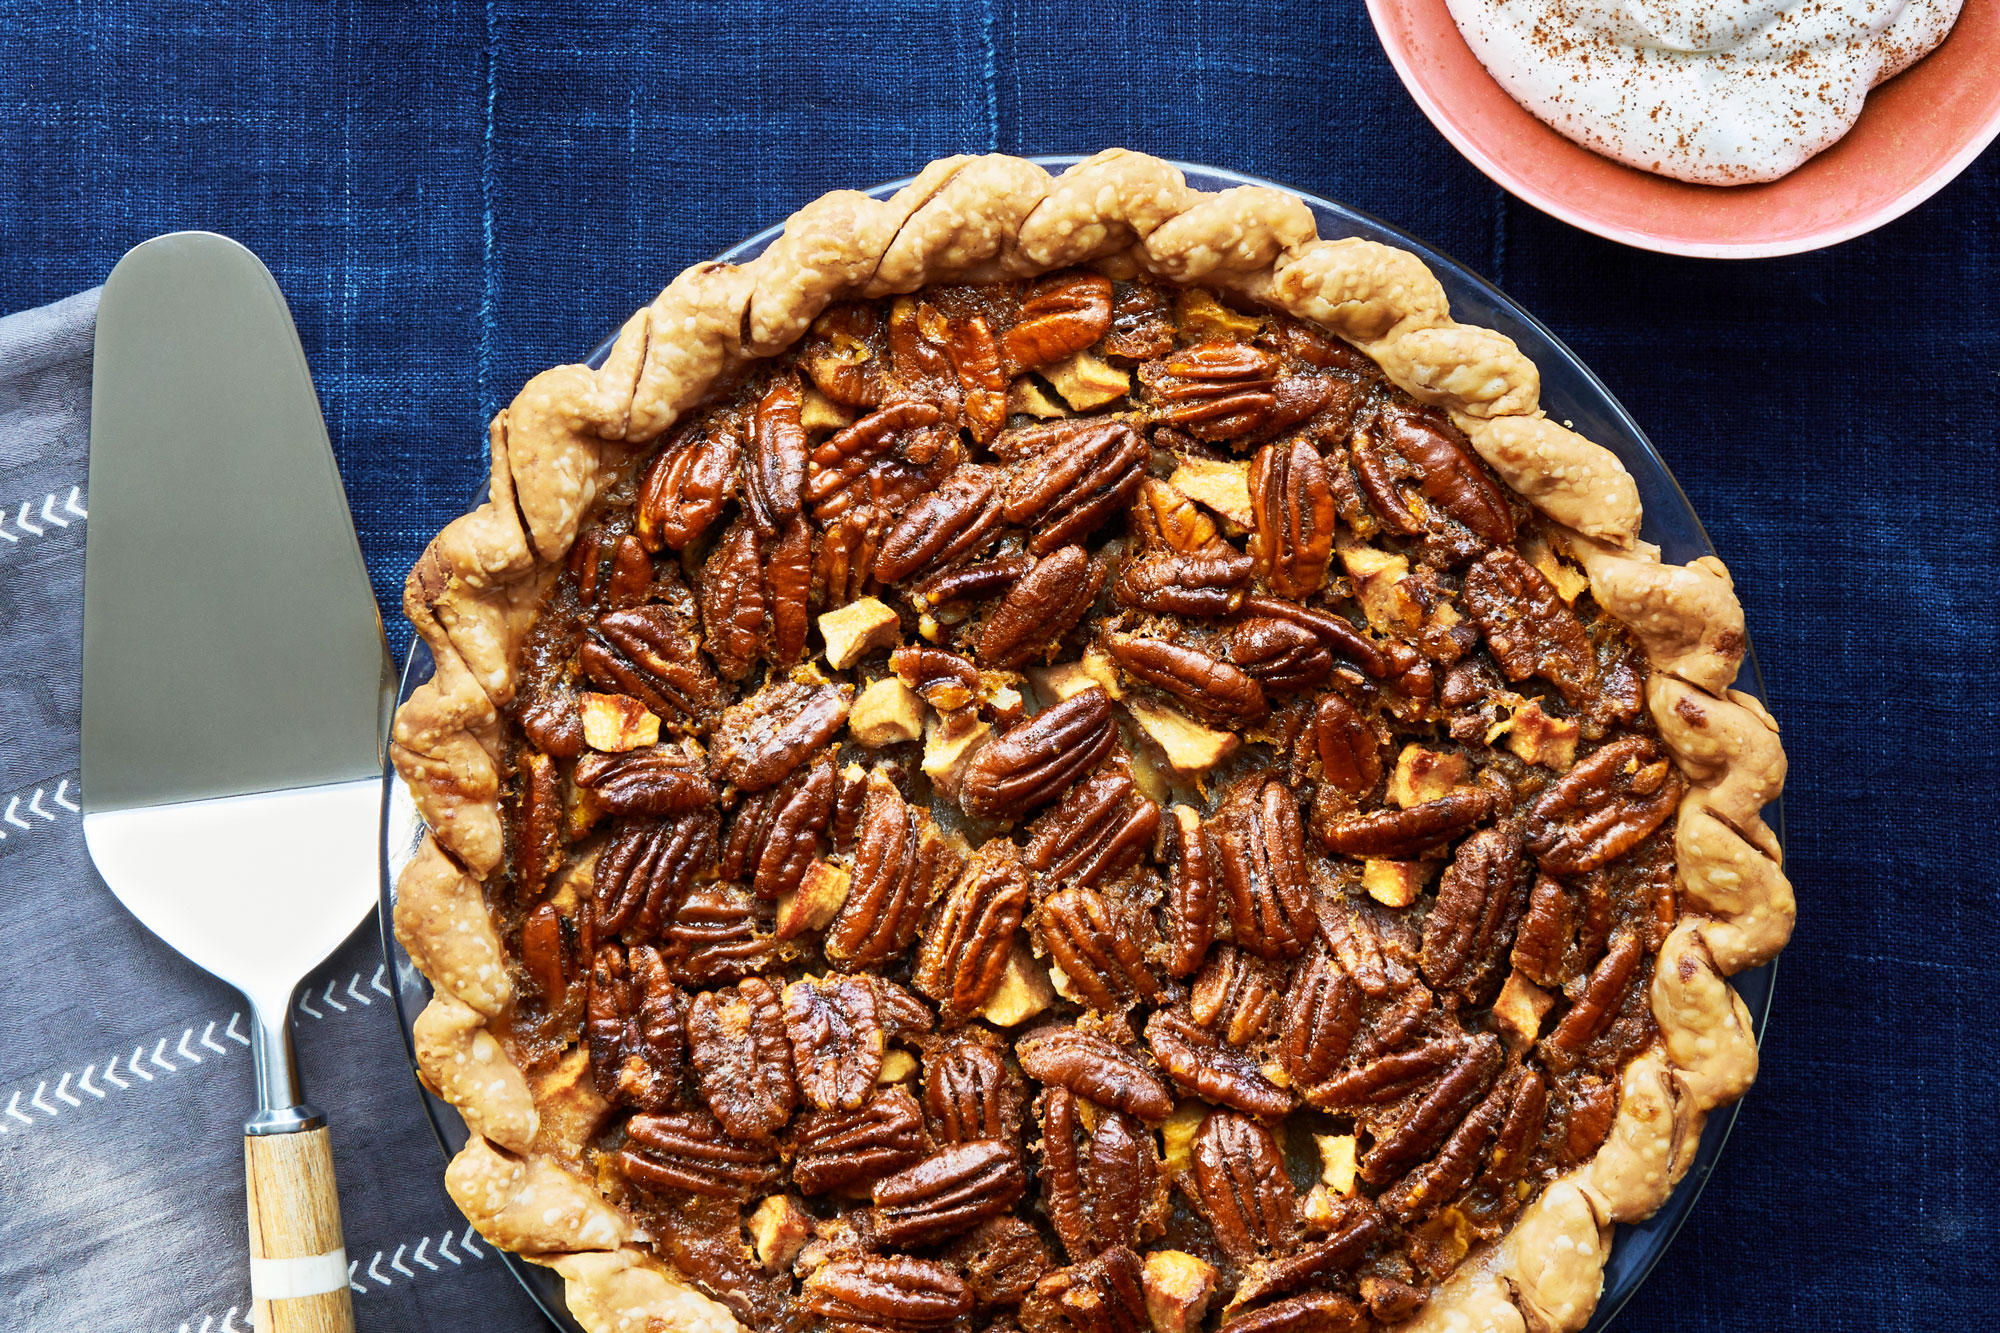 Bourbon Pecan Pie with Cinnamon Whipped Cream